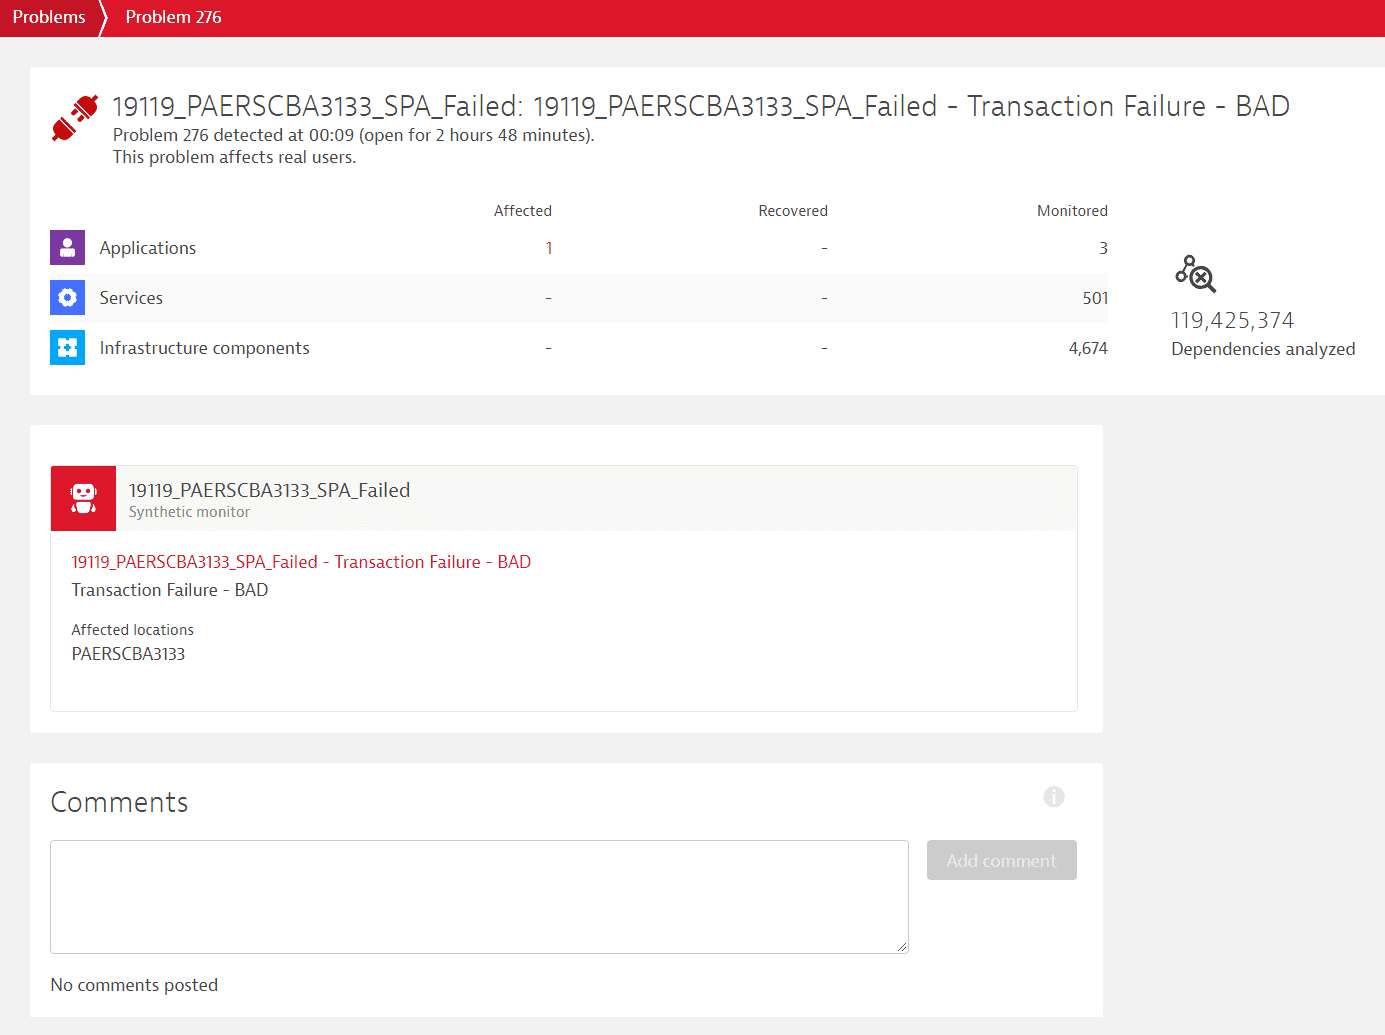 Synthetic Classic problem in Dynatrace